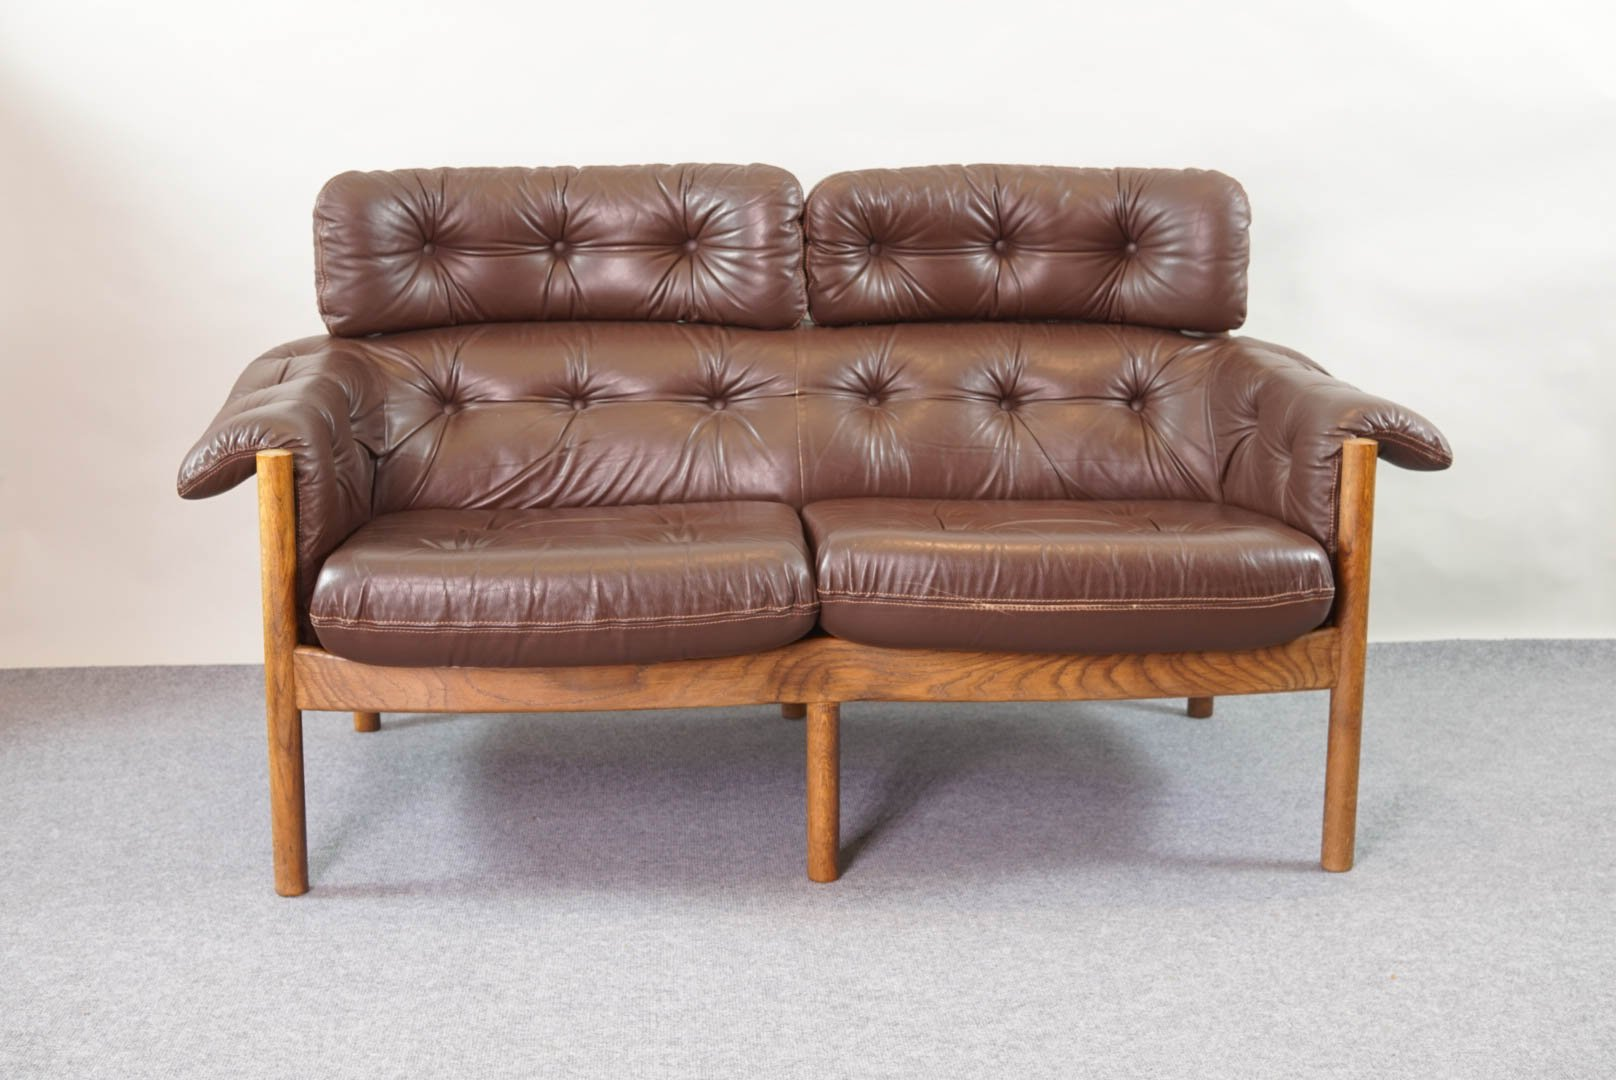 Vintage Tufted Leather Sofa by Arne Norell for Coja for ...